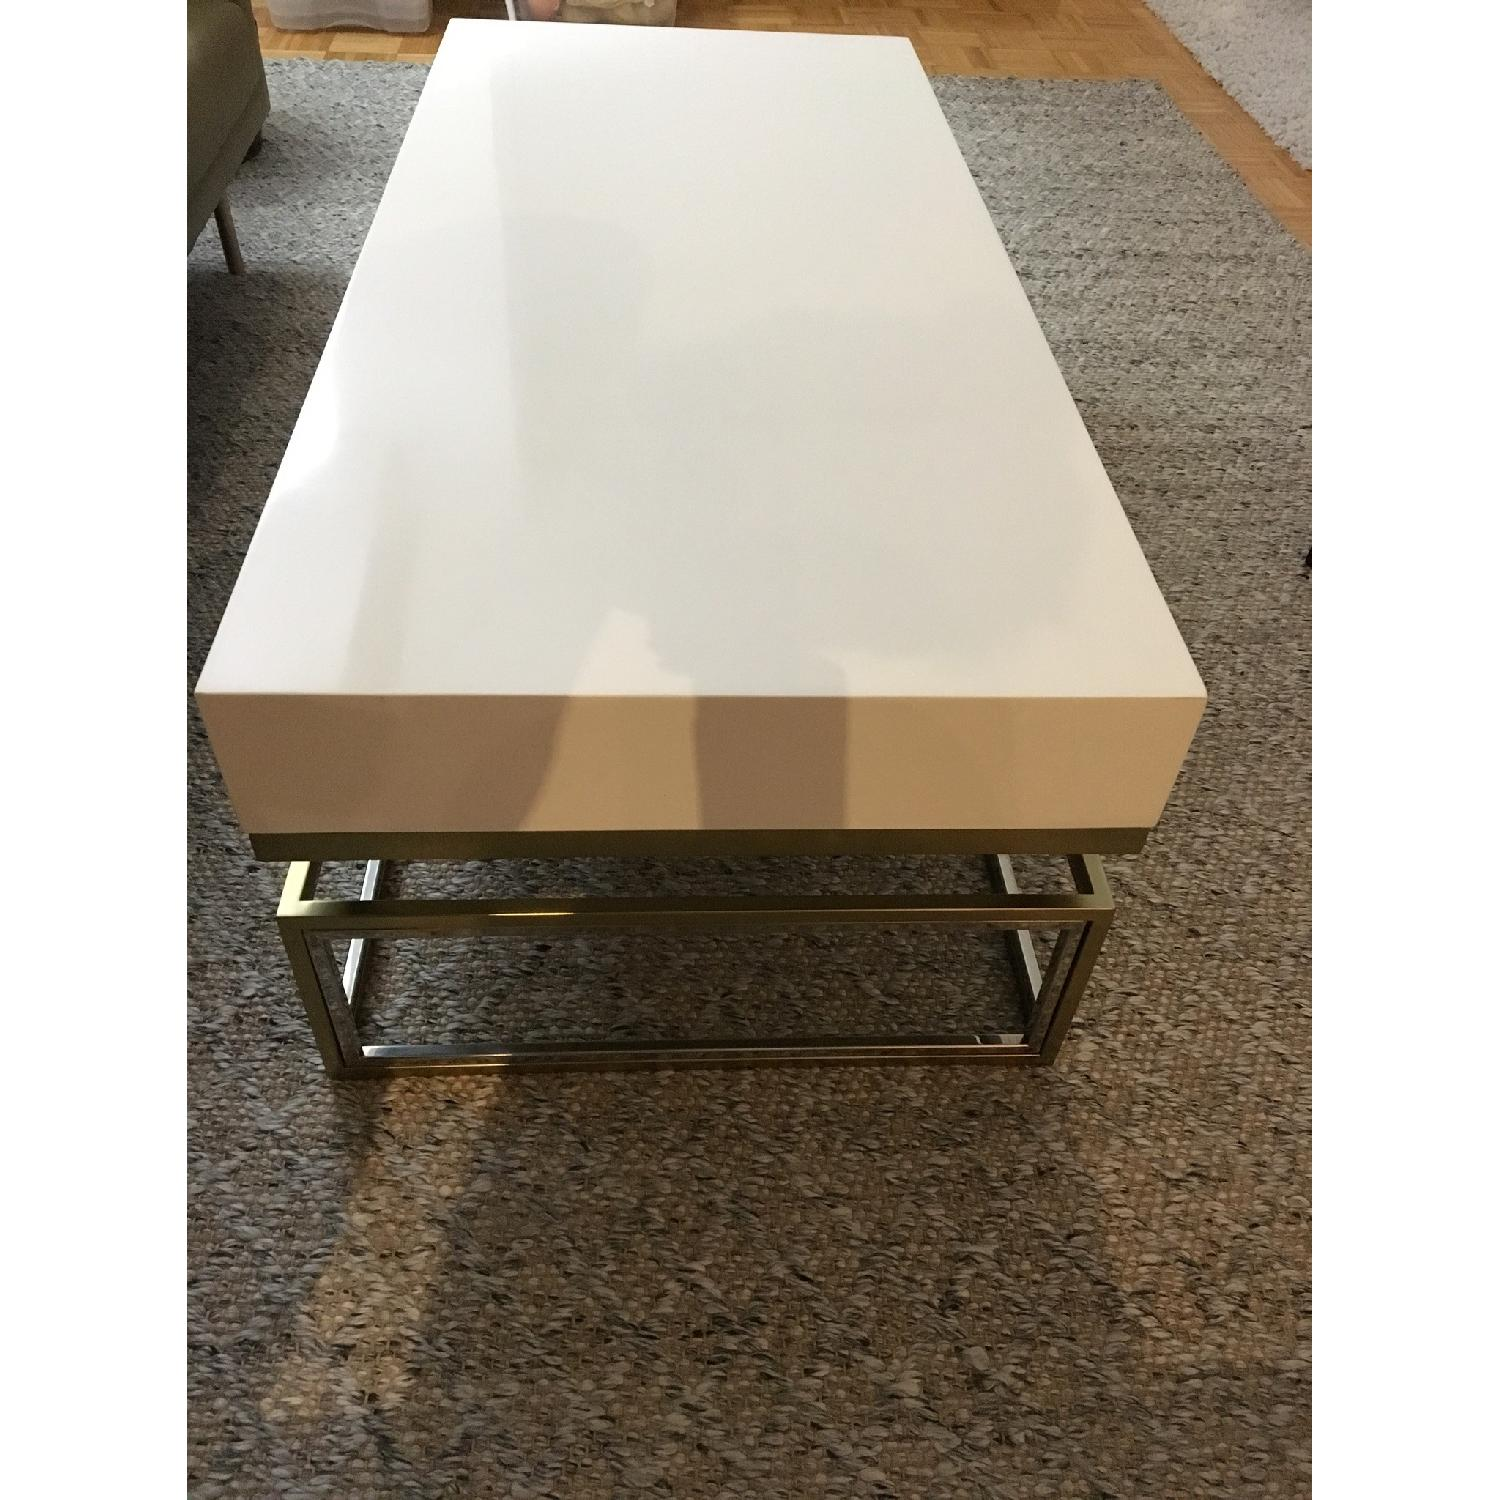 ... Anthropologie White Lacquer Coffee Table 5